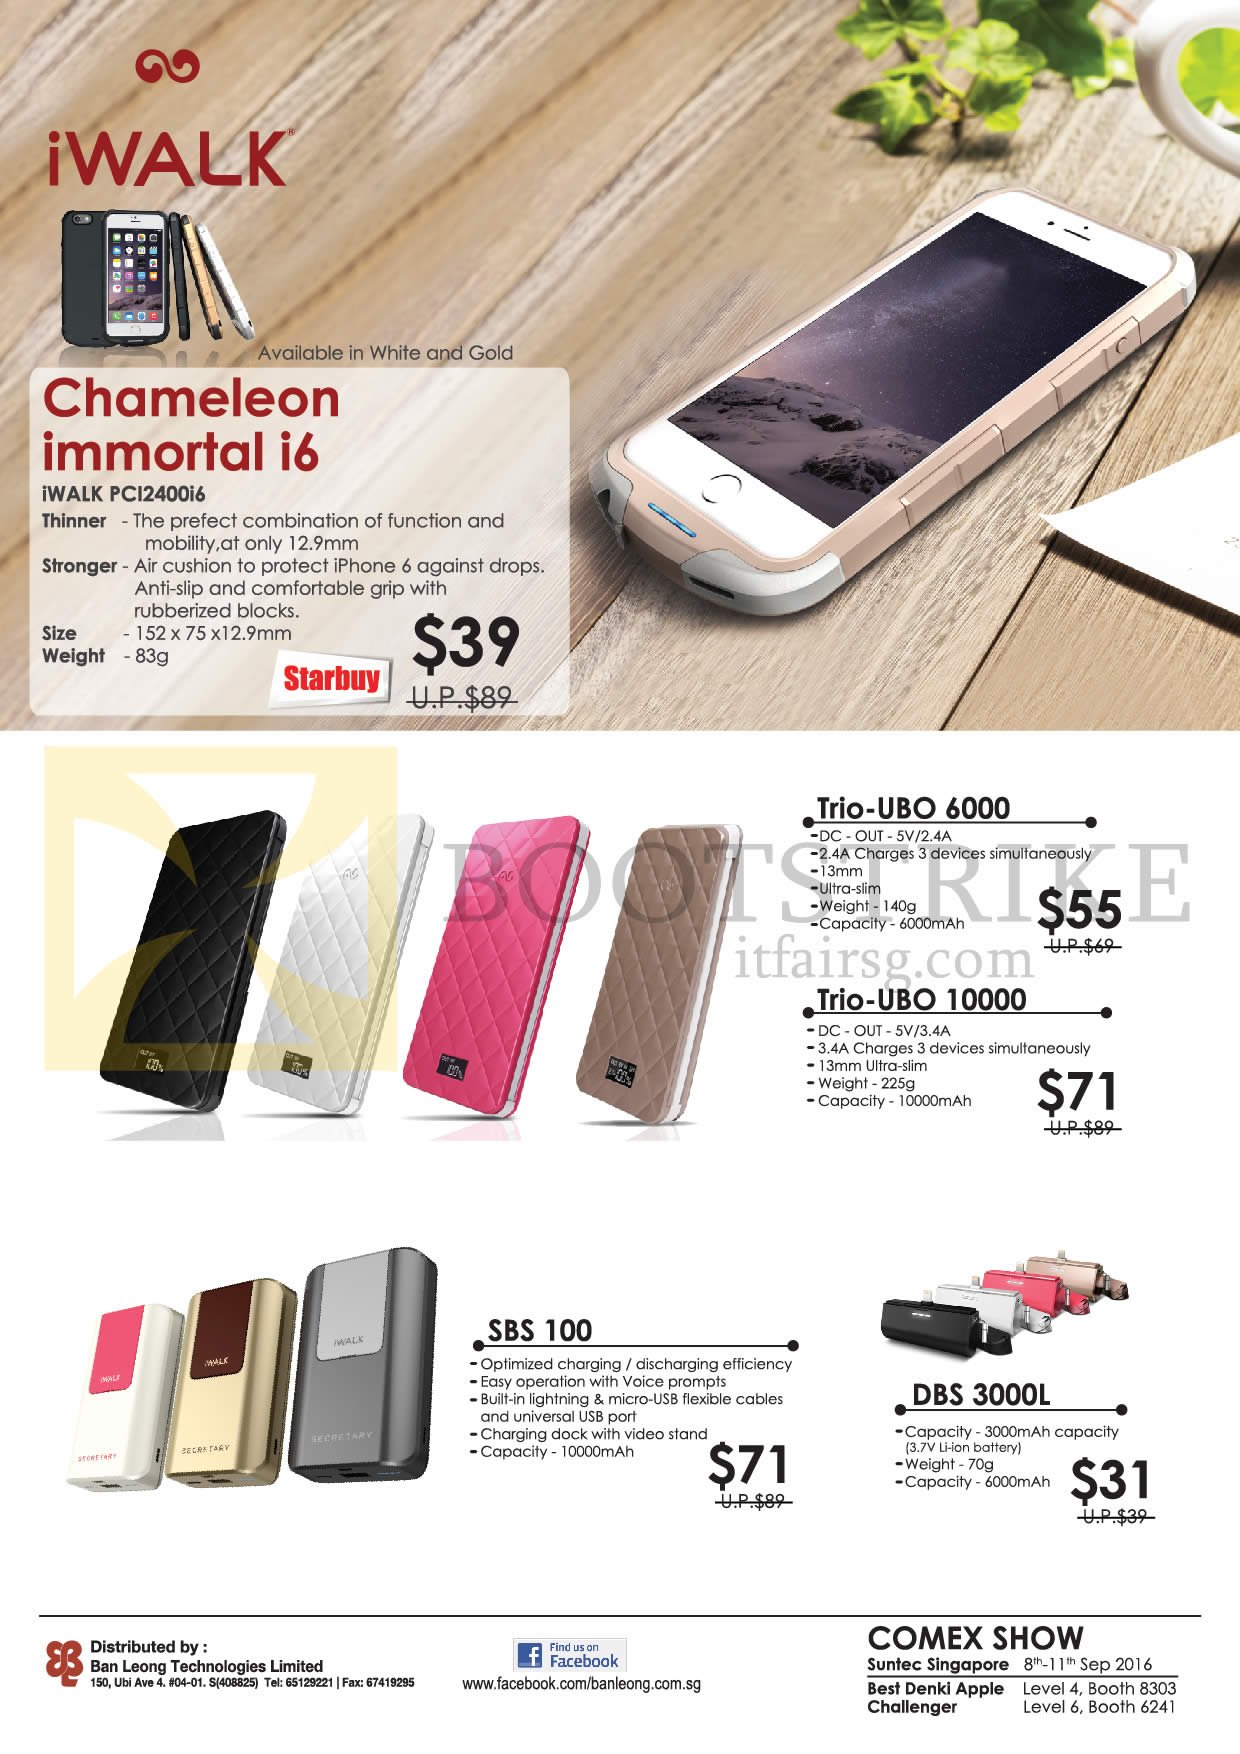 COMEX 2016 price list image brochure of IWalk Portable Chargers, Chameleon Immortal I6, Trio-UBO 6000, 10000, SBS 100, DBS 3000L